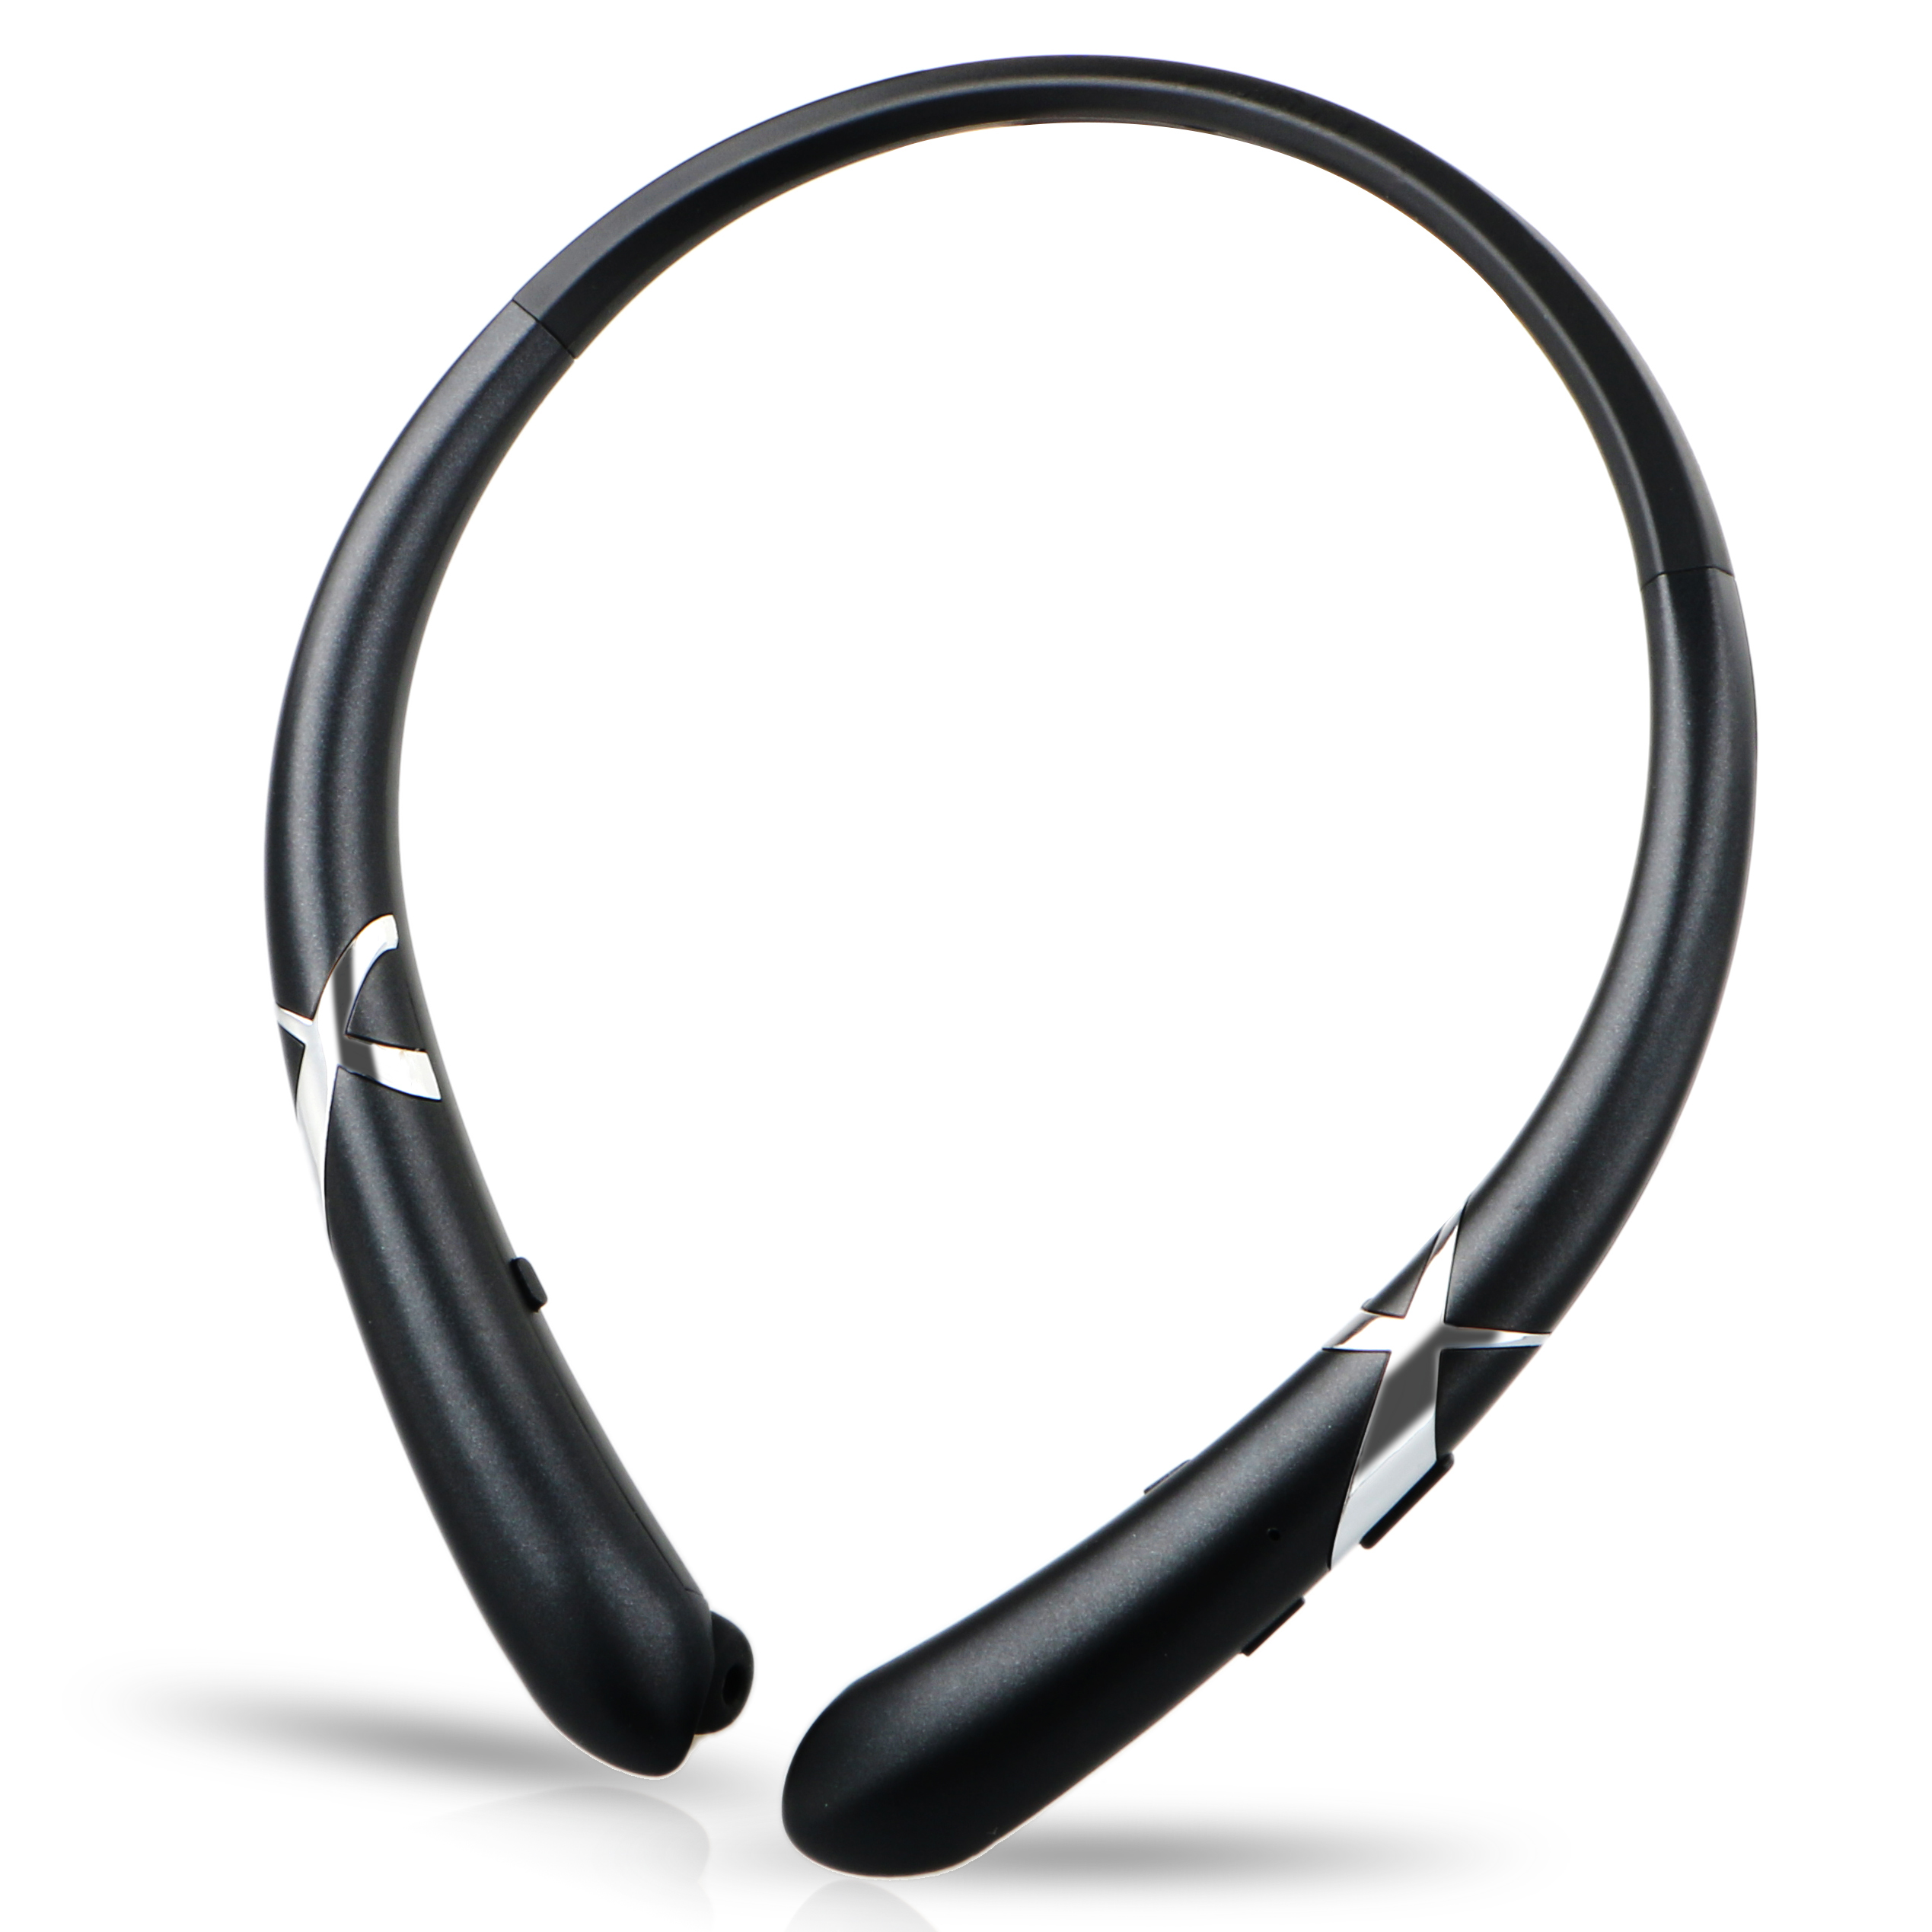 Bluetooth Headphones Waterproof Wireless Flexible Neckband Headset Stereo Noise Reduction Earbuds w/ Mic for iPhone Samsung iPad